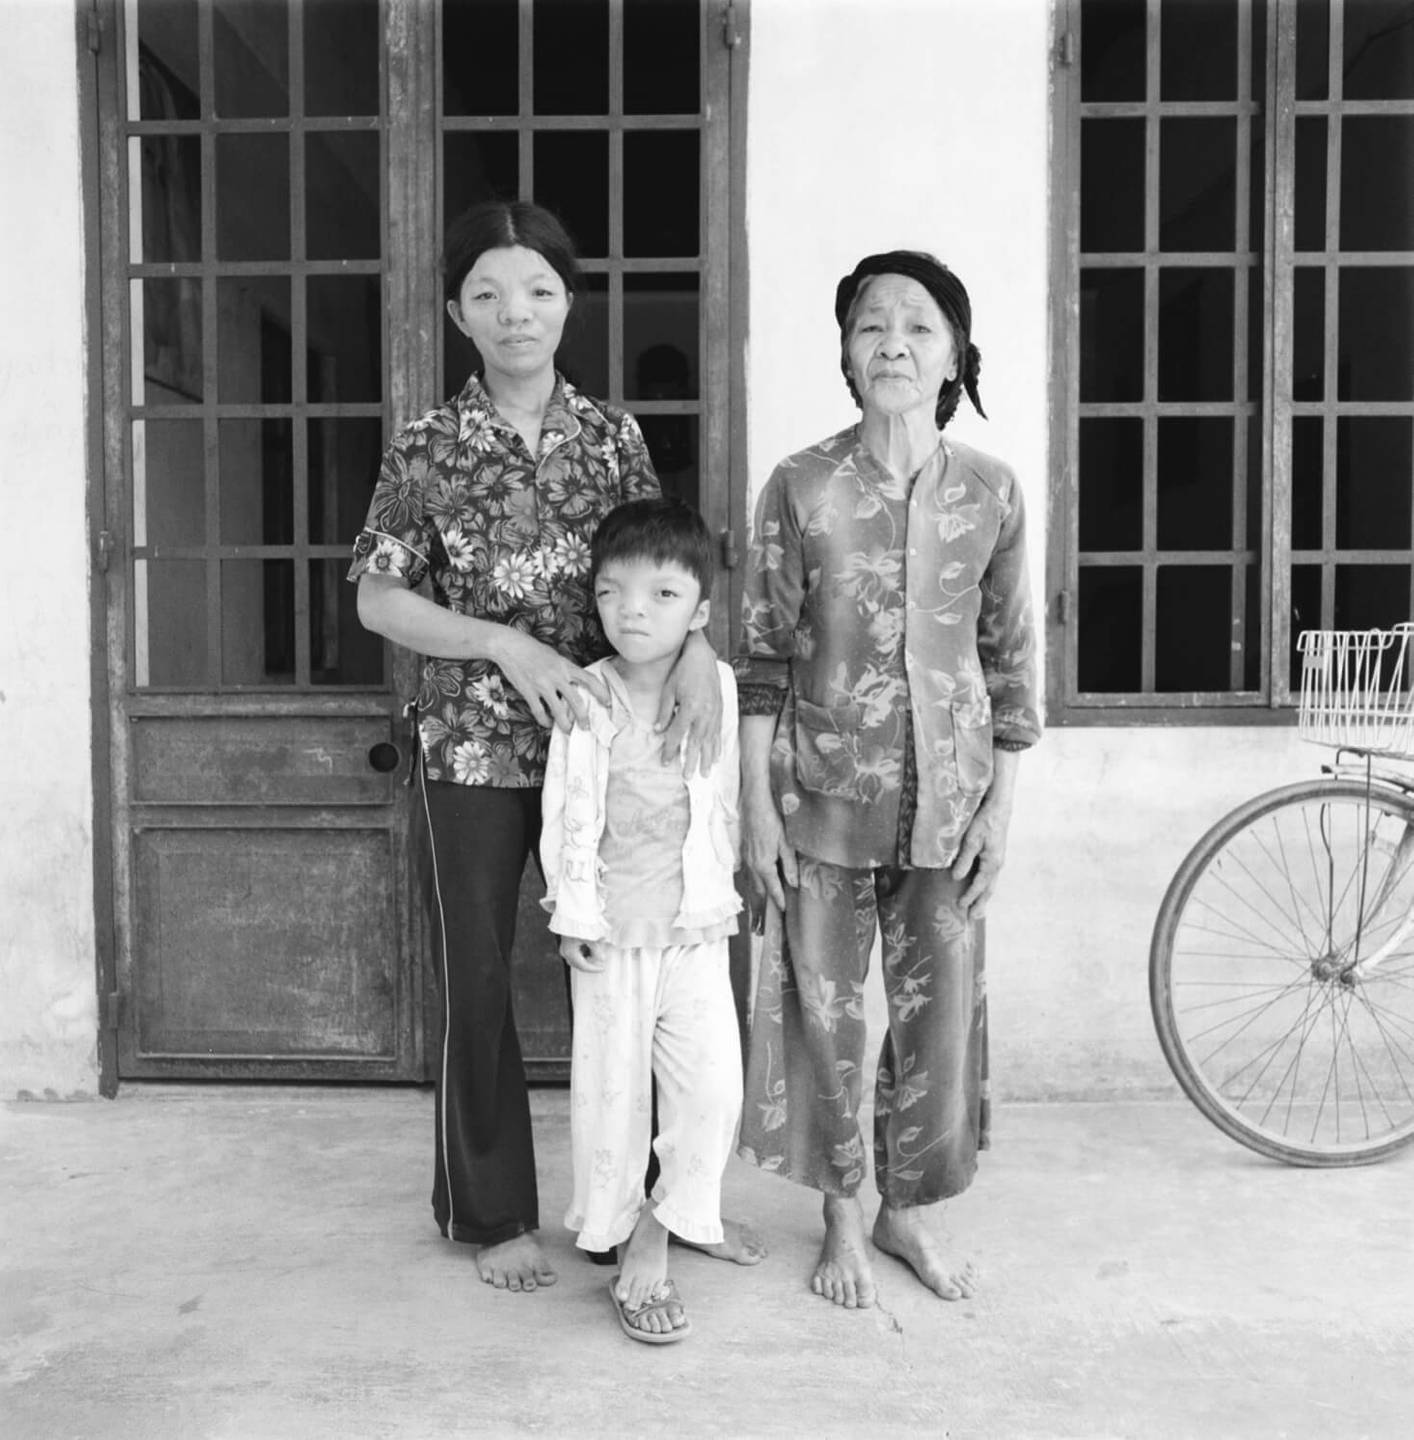 Three generations standing outside a building, the child is deformed.